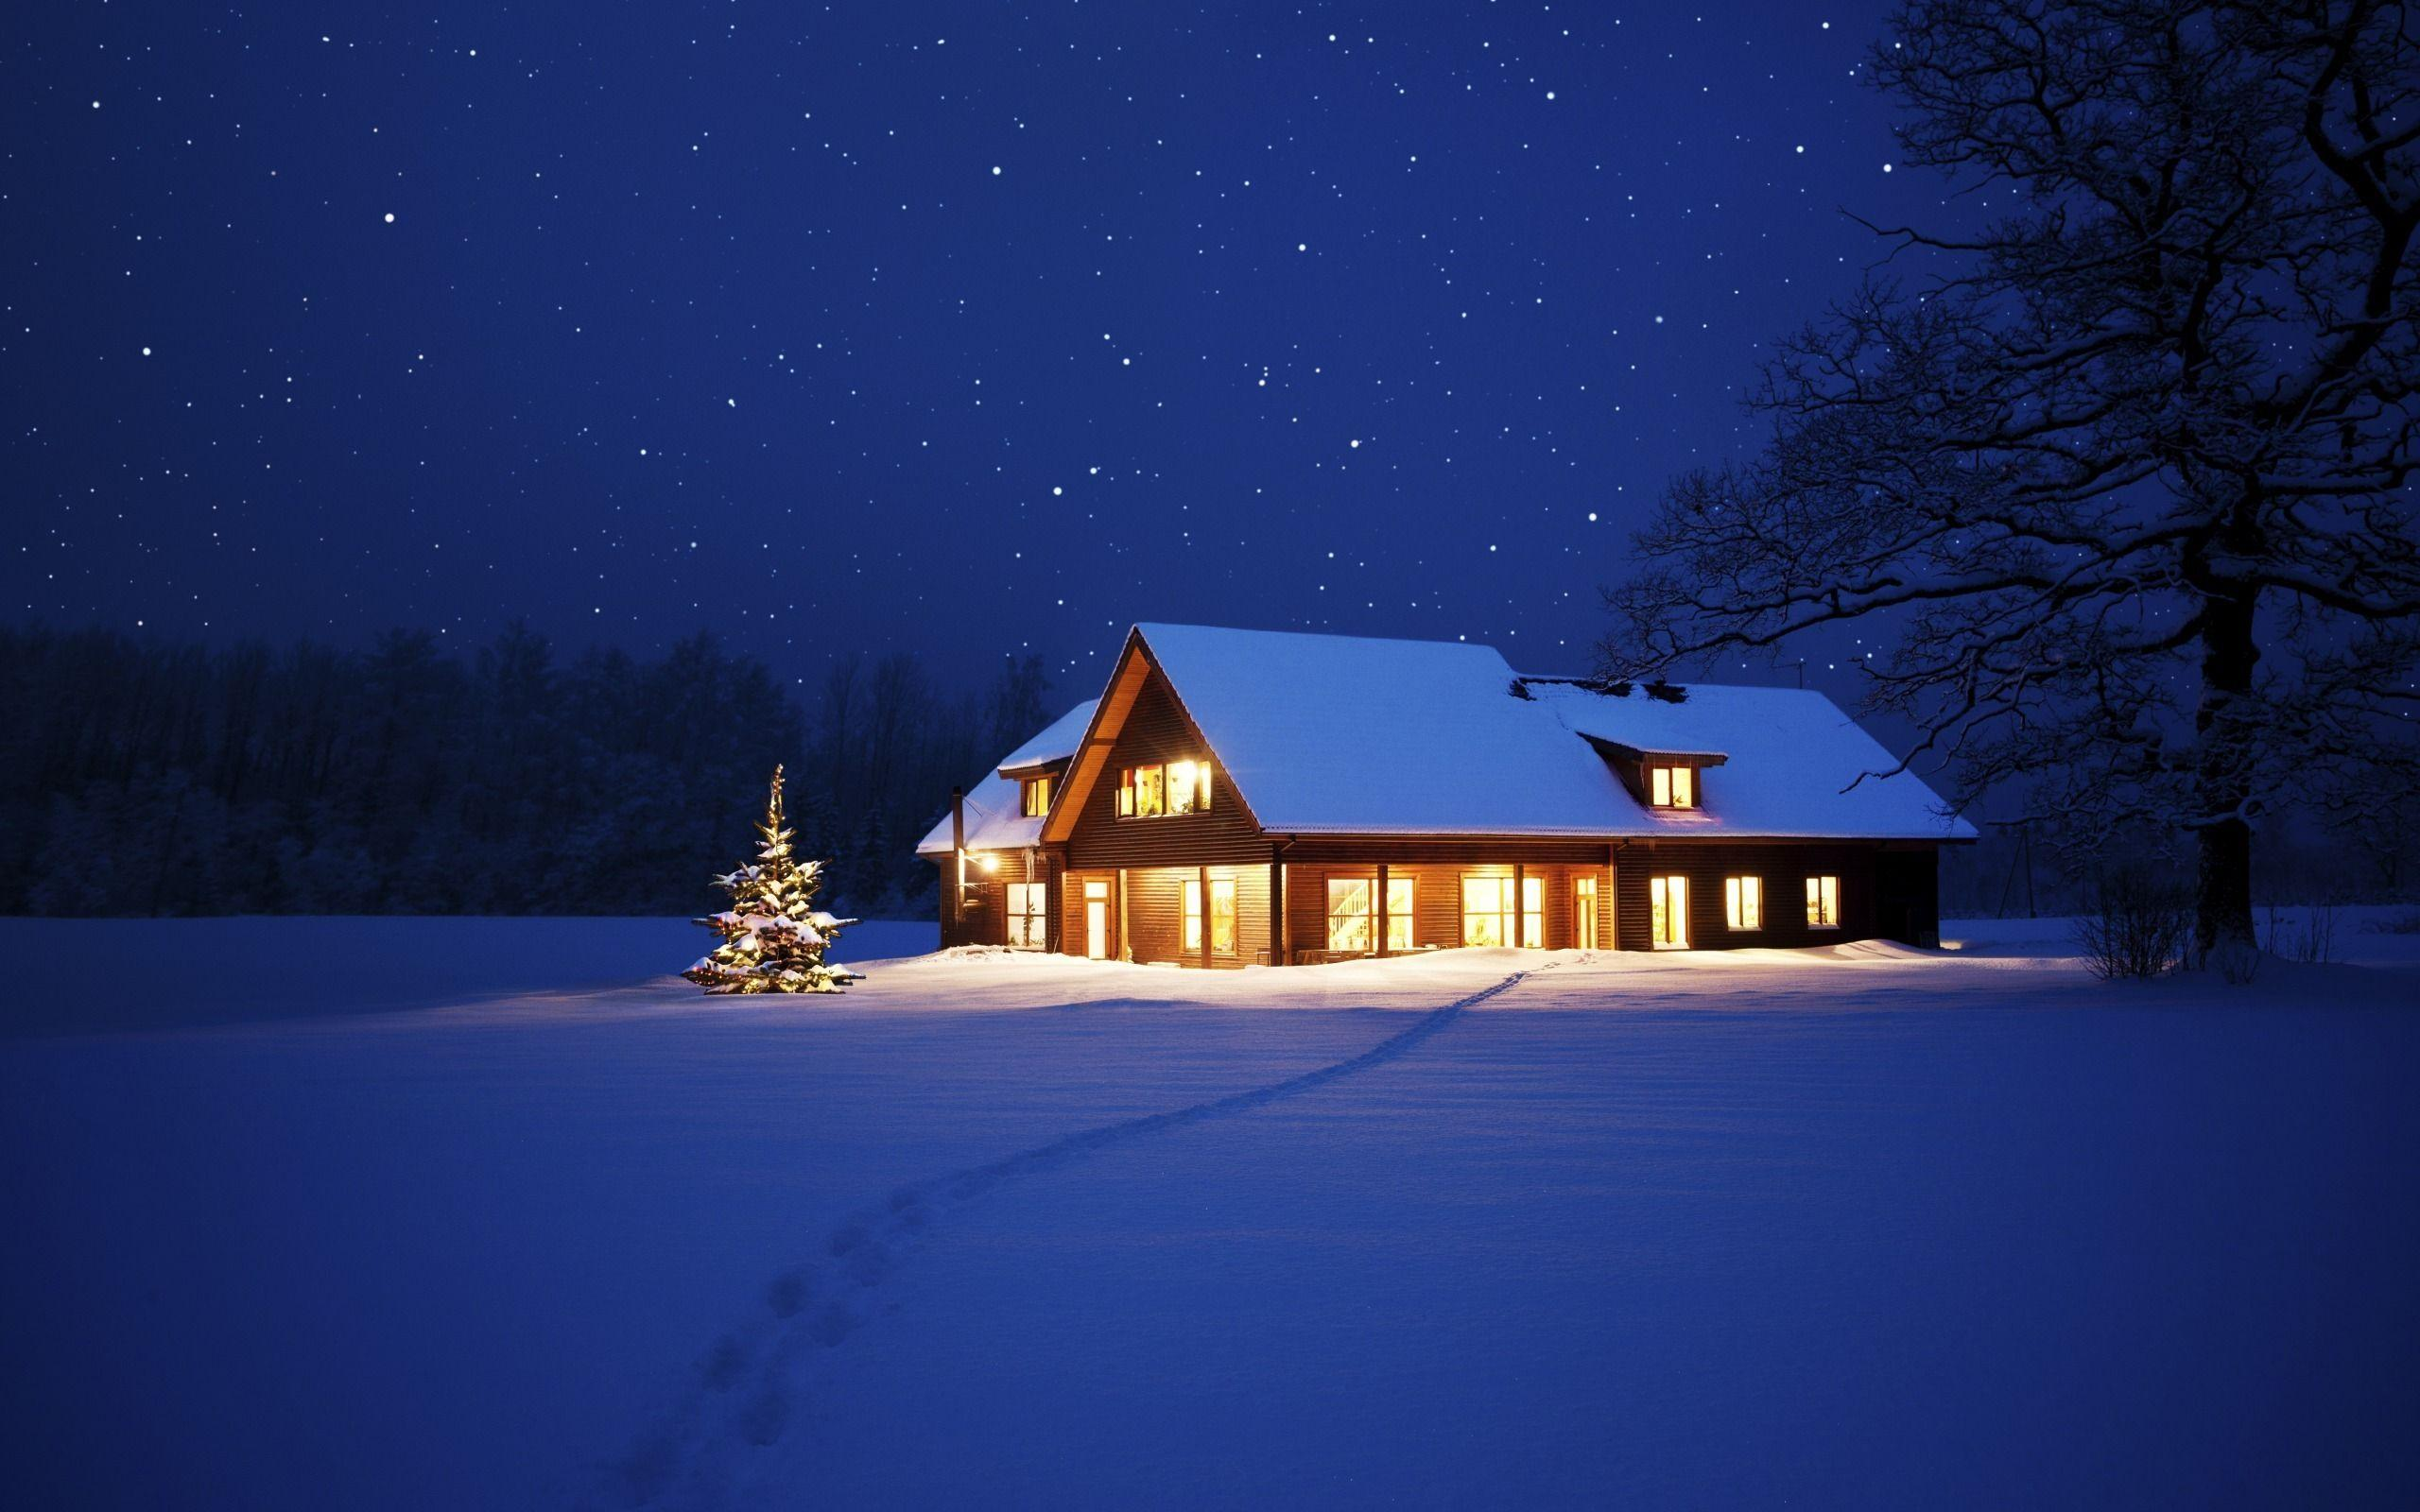 Pin Night Winter Lights Trees Sky Snow Nature Hd Wallpapers